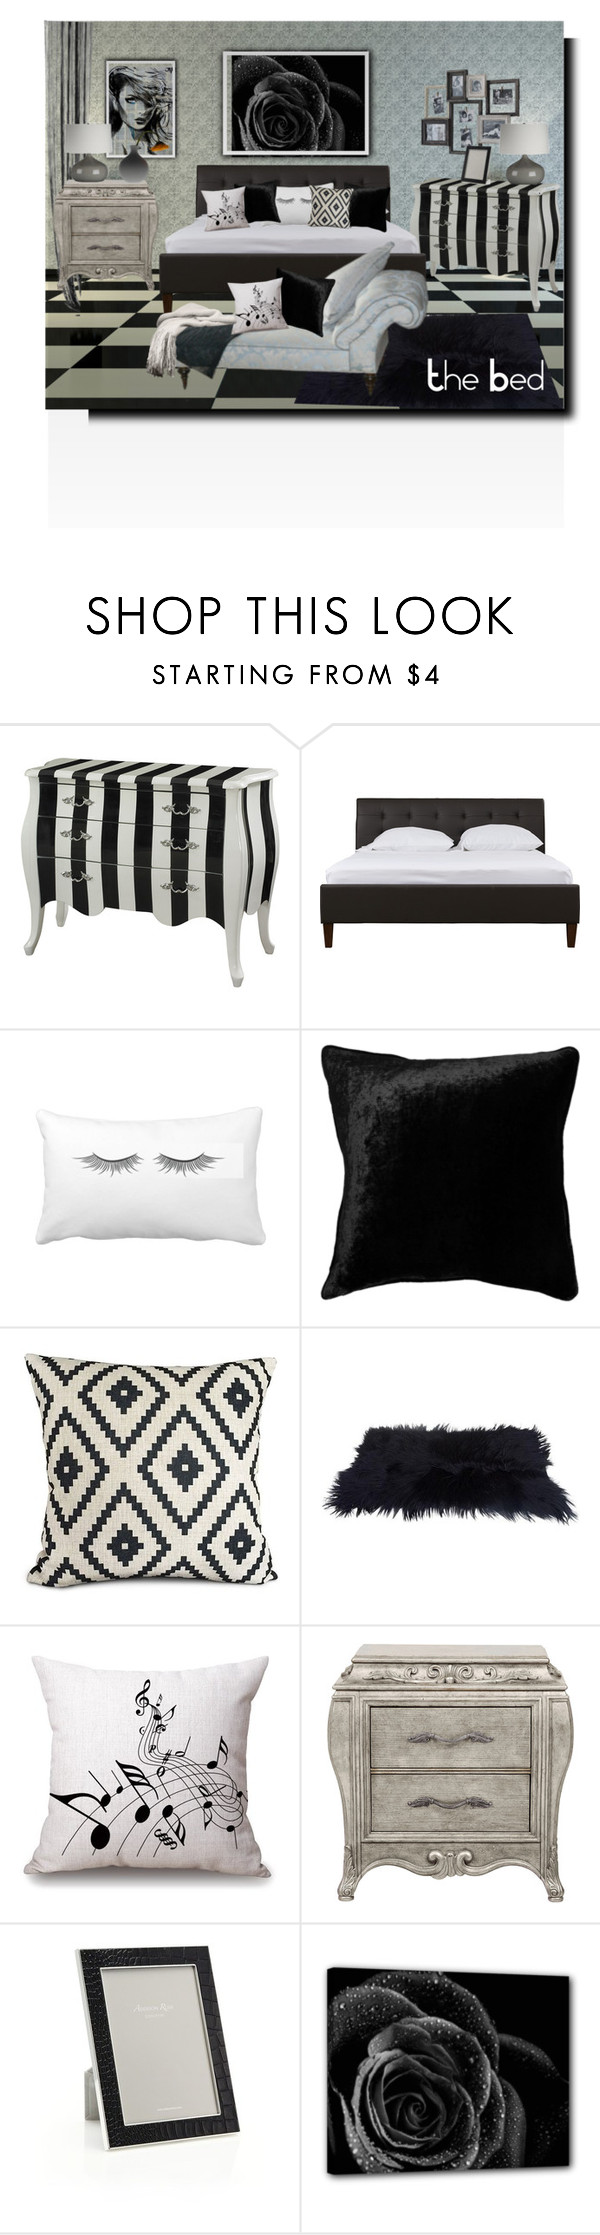 """""""The bed contest"""" by barbara-gennari ❤ liked on Polyvore featuring interior, interiors, interior design, home, home decor, interior decorating and Addison Ross"""